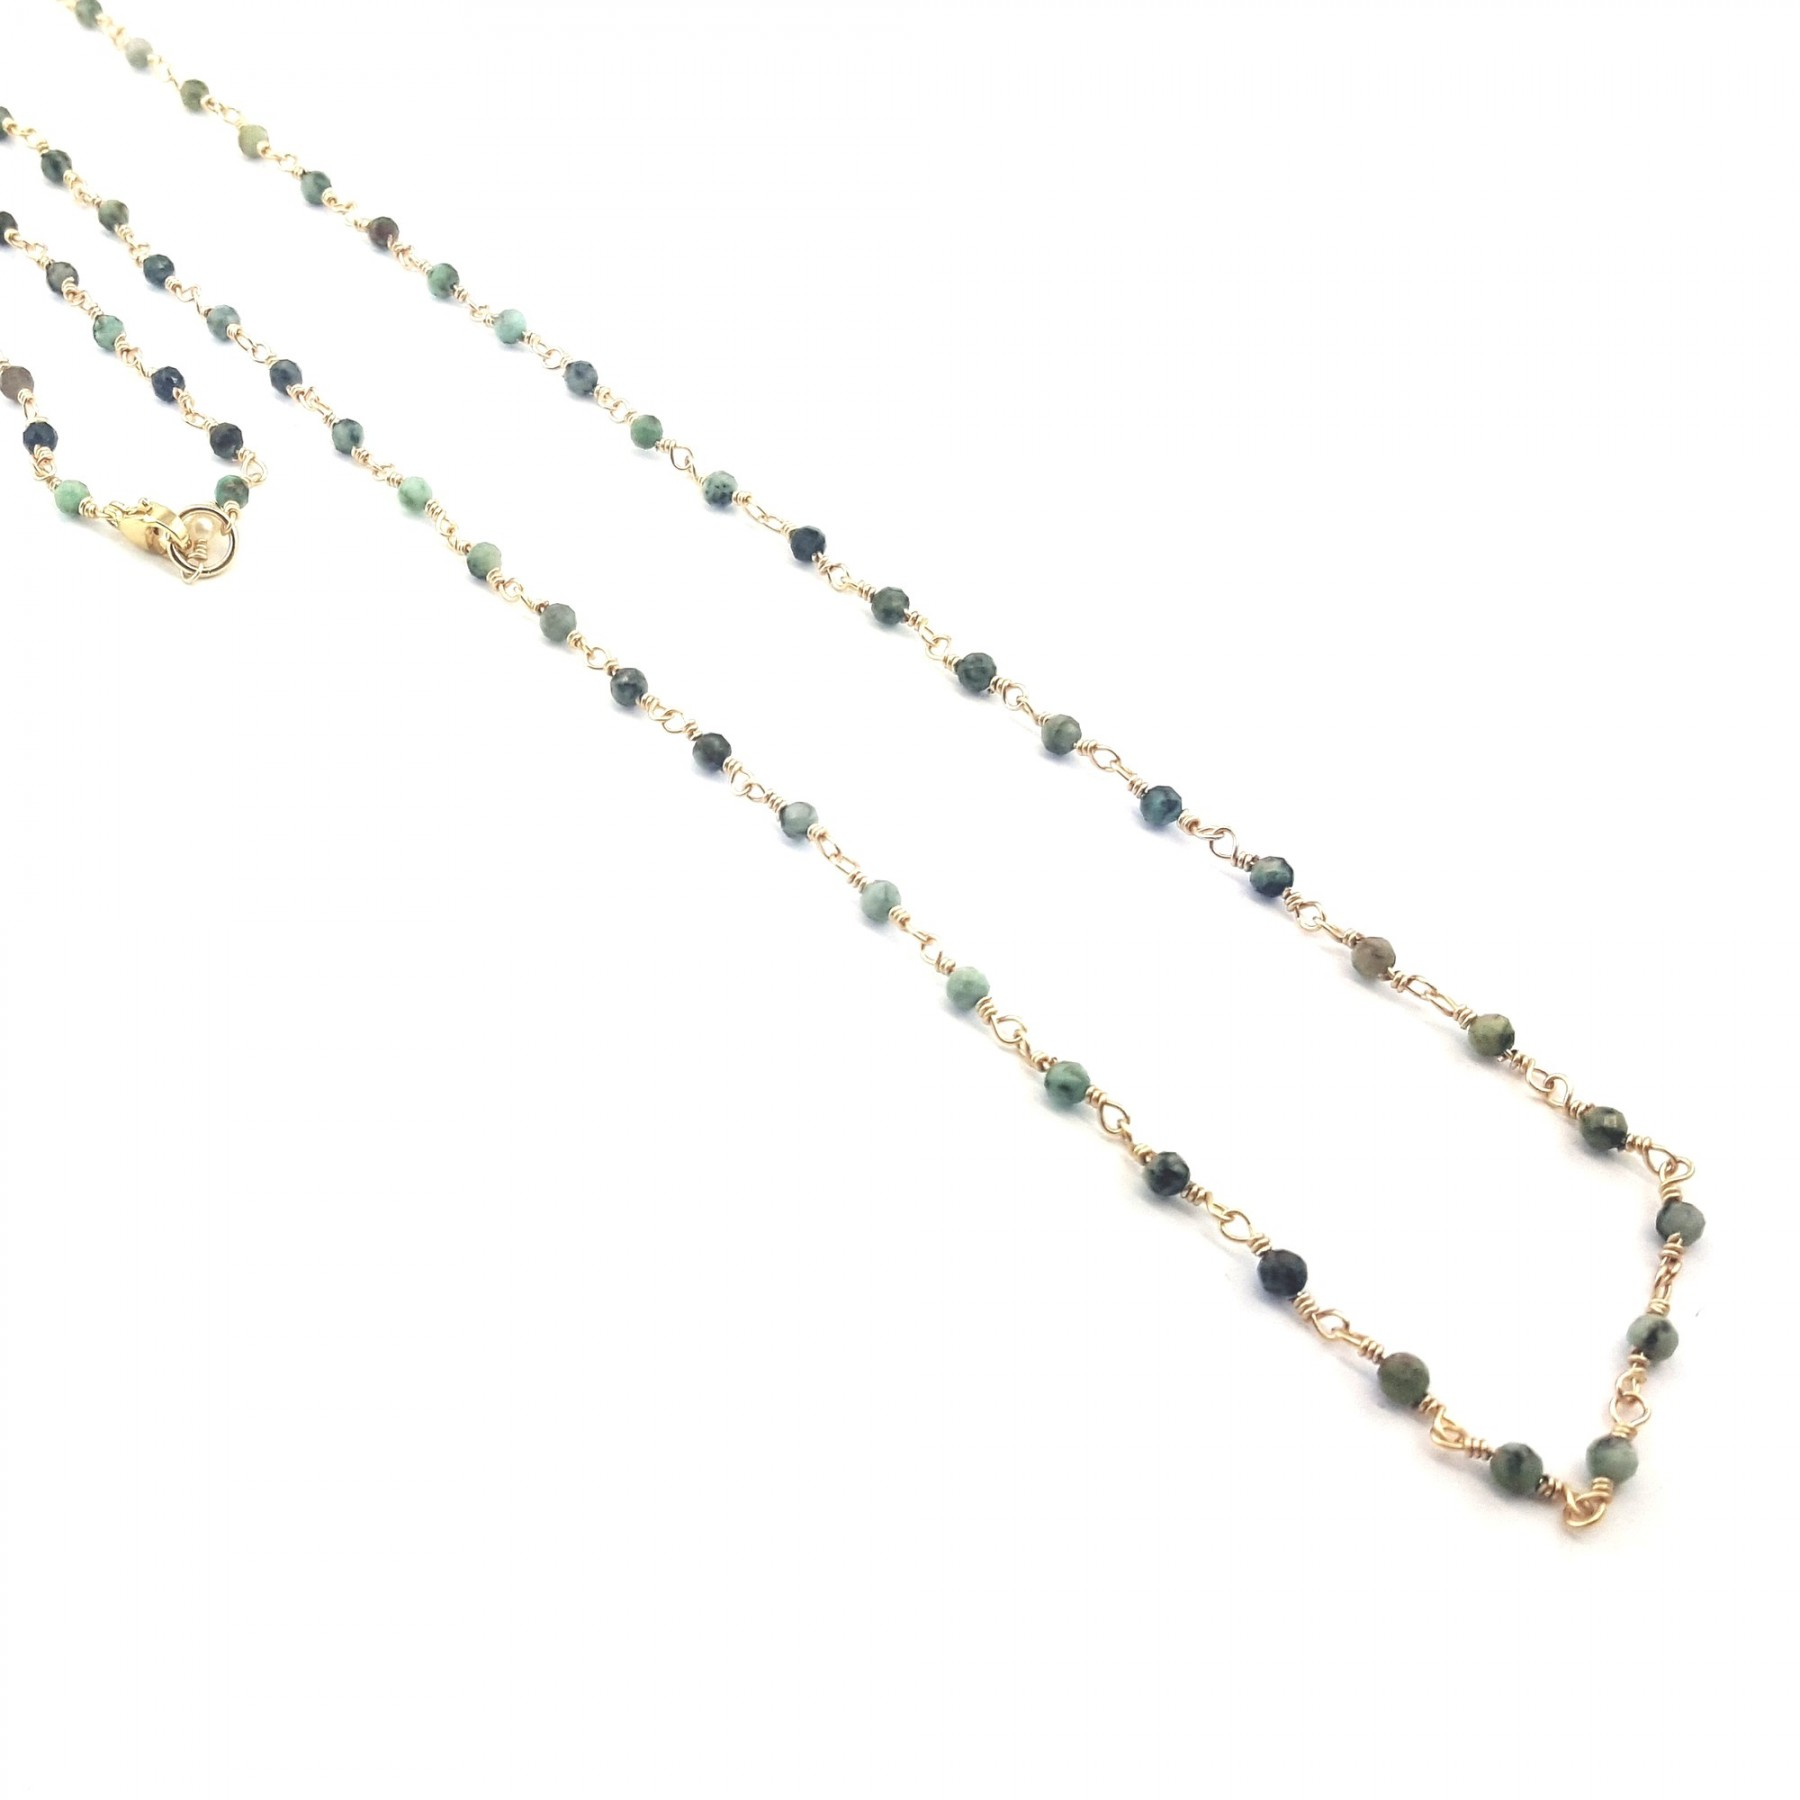 Collier long perles turquoises africaines